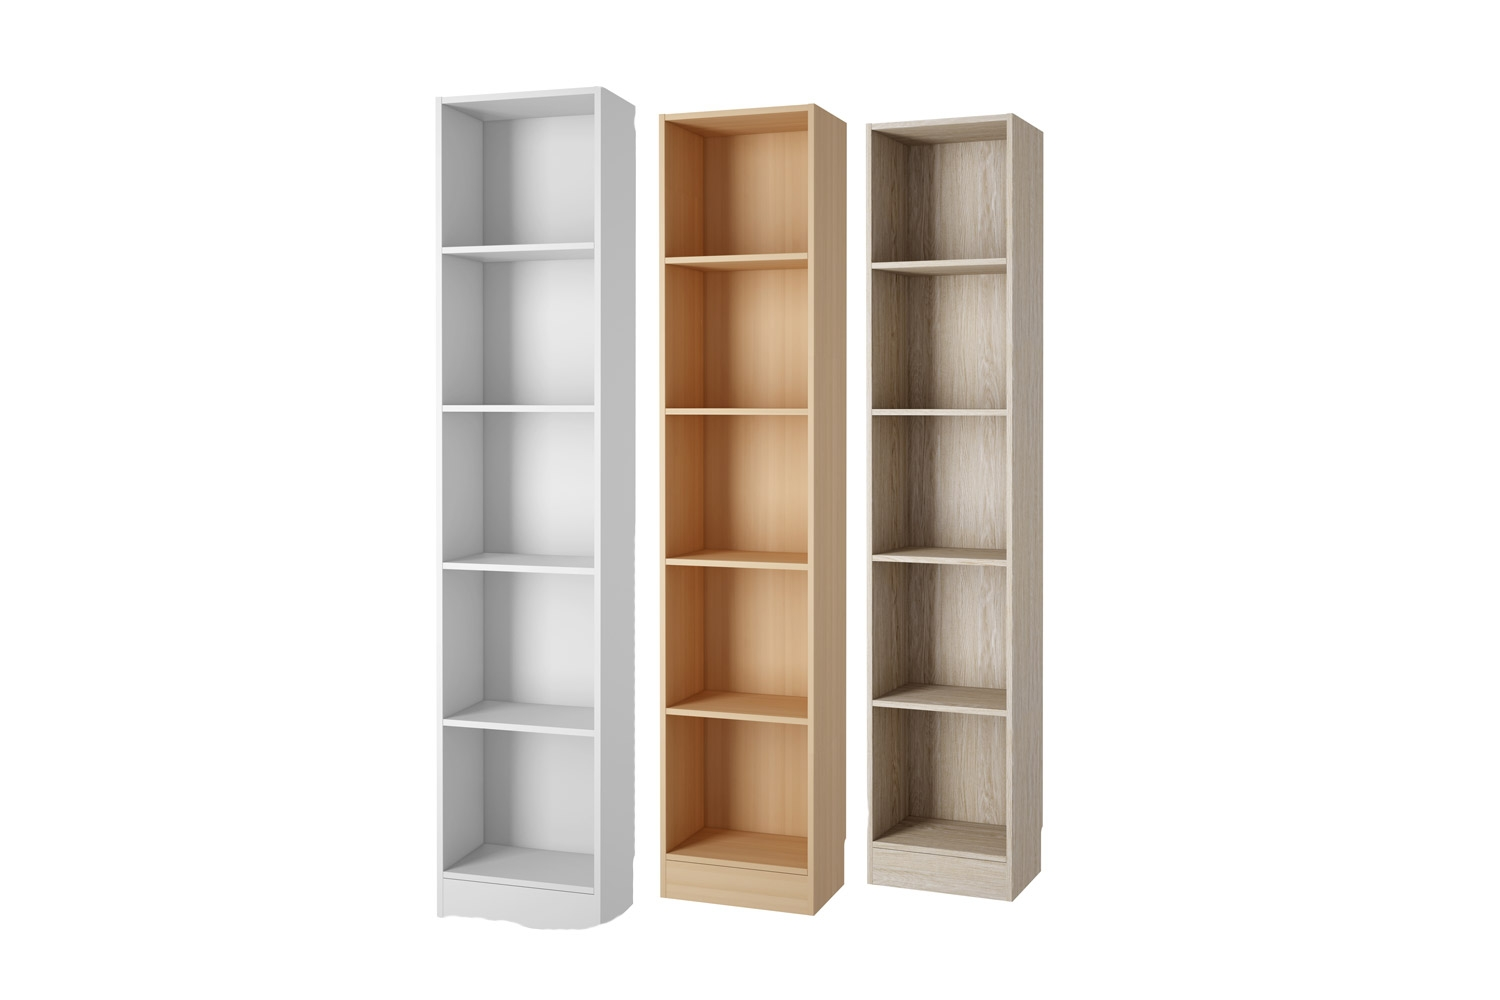 15 Photo Of Very Tall Bookcase